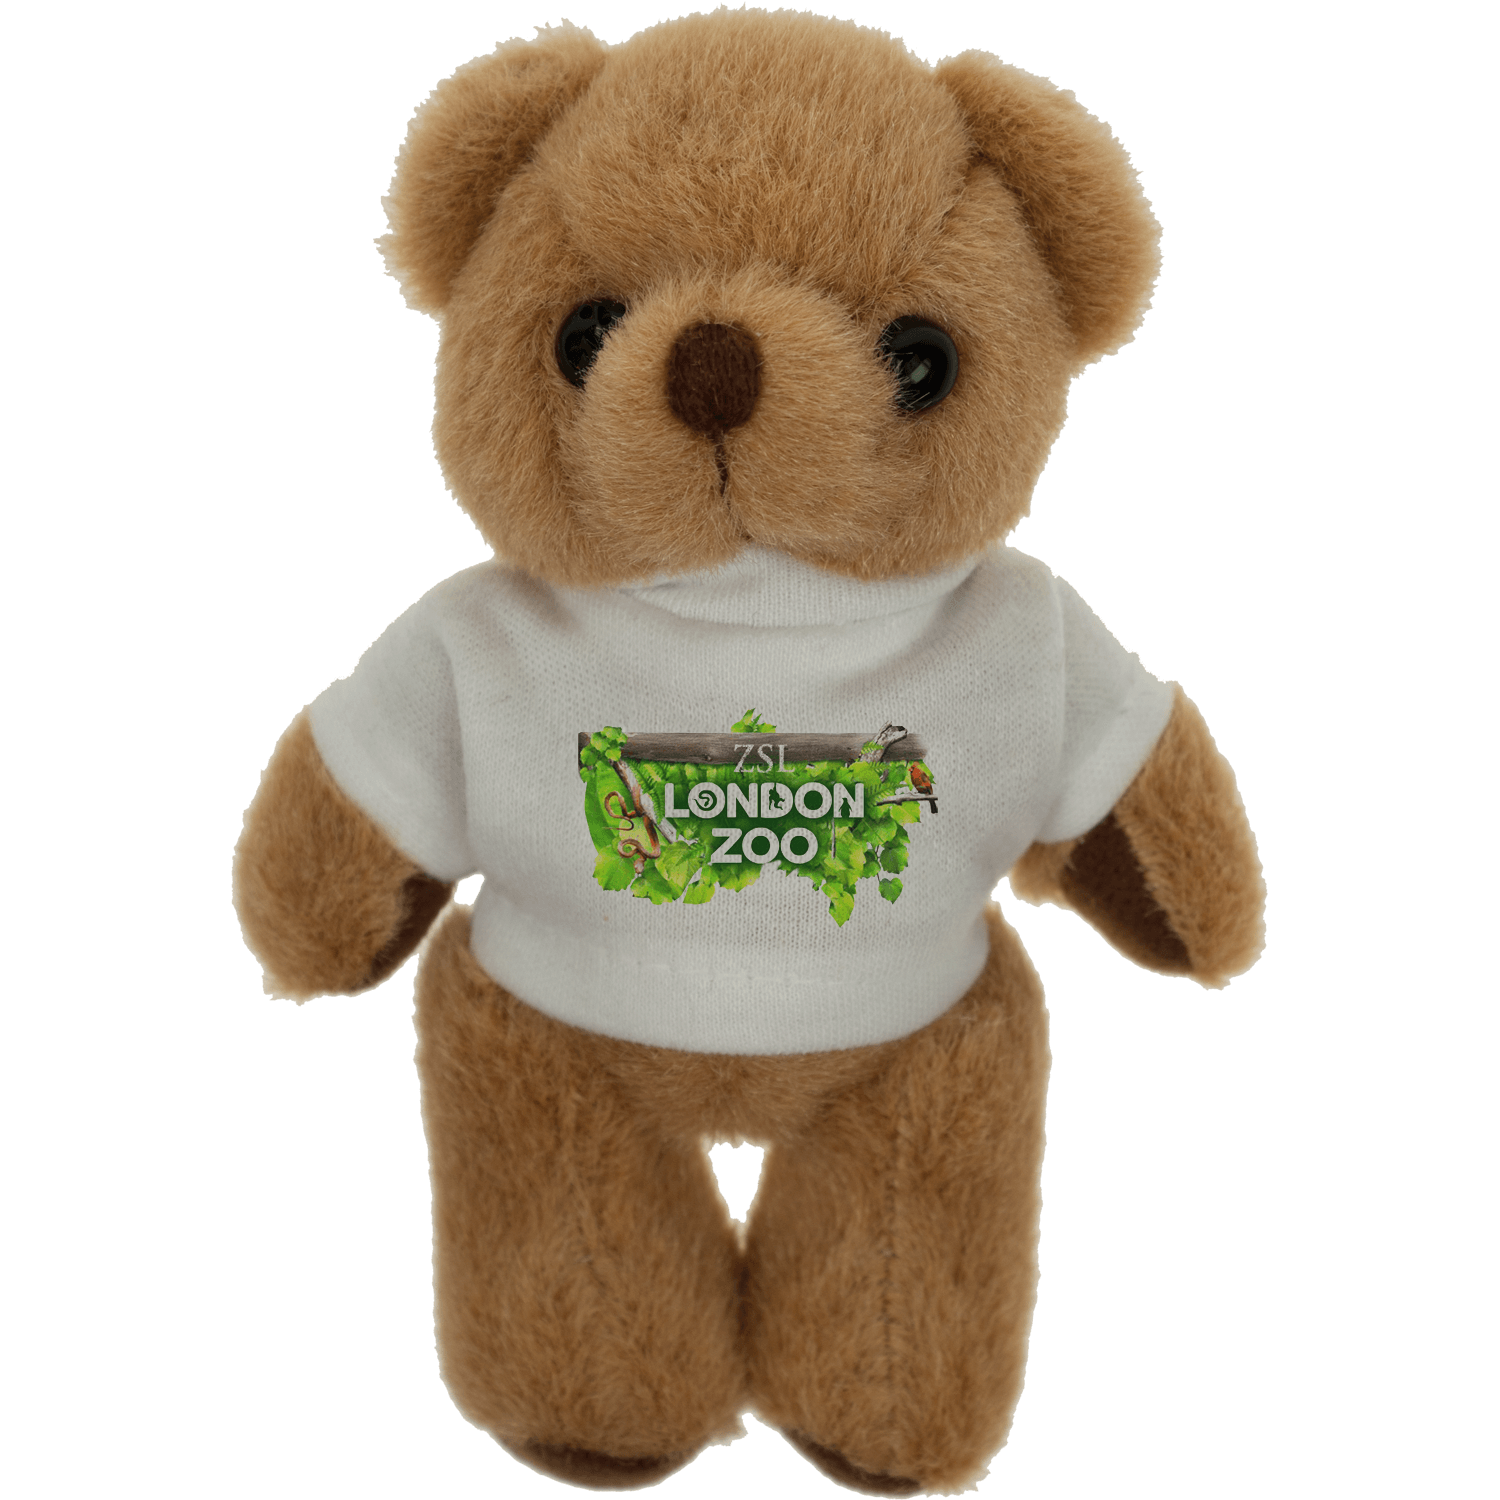 Baby Bear - 125mm with T-Shirt